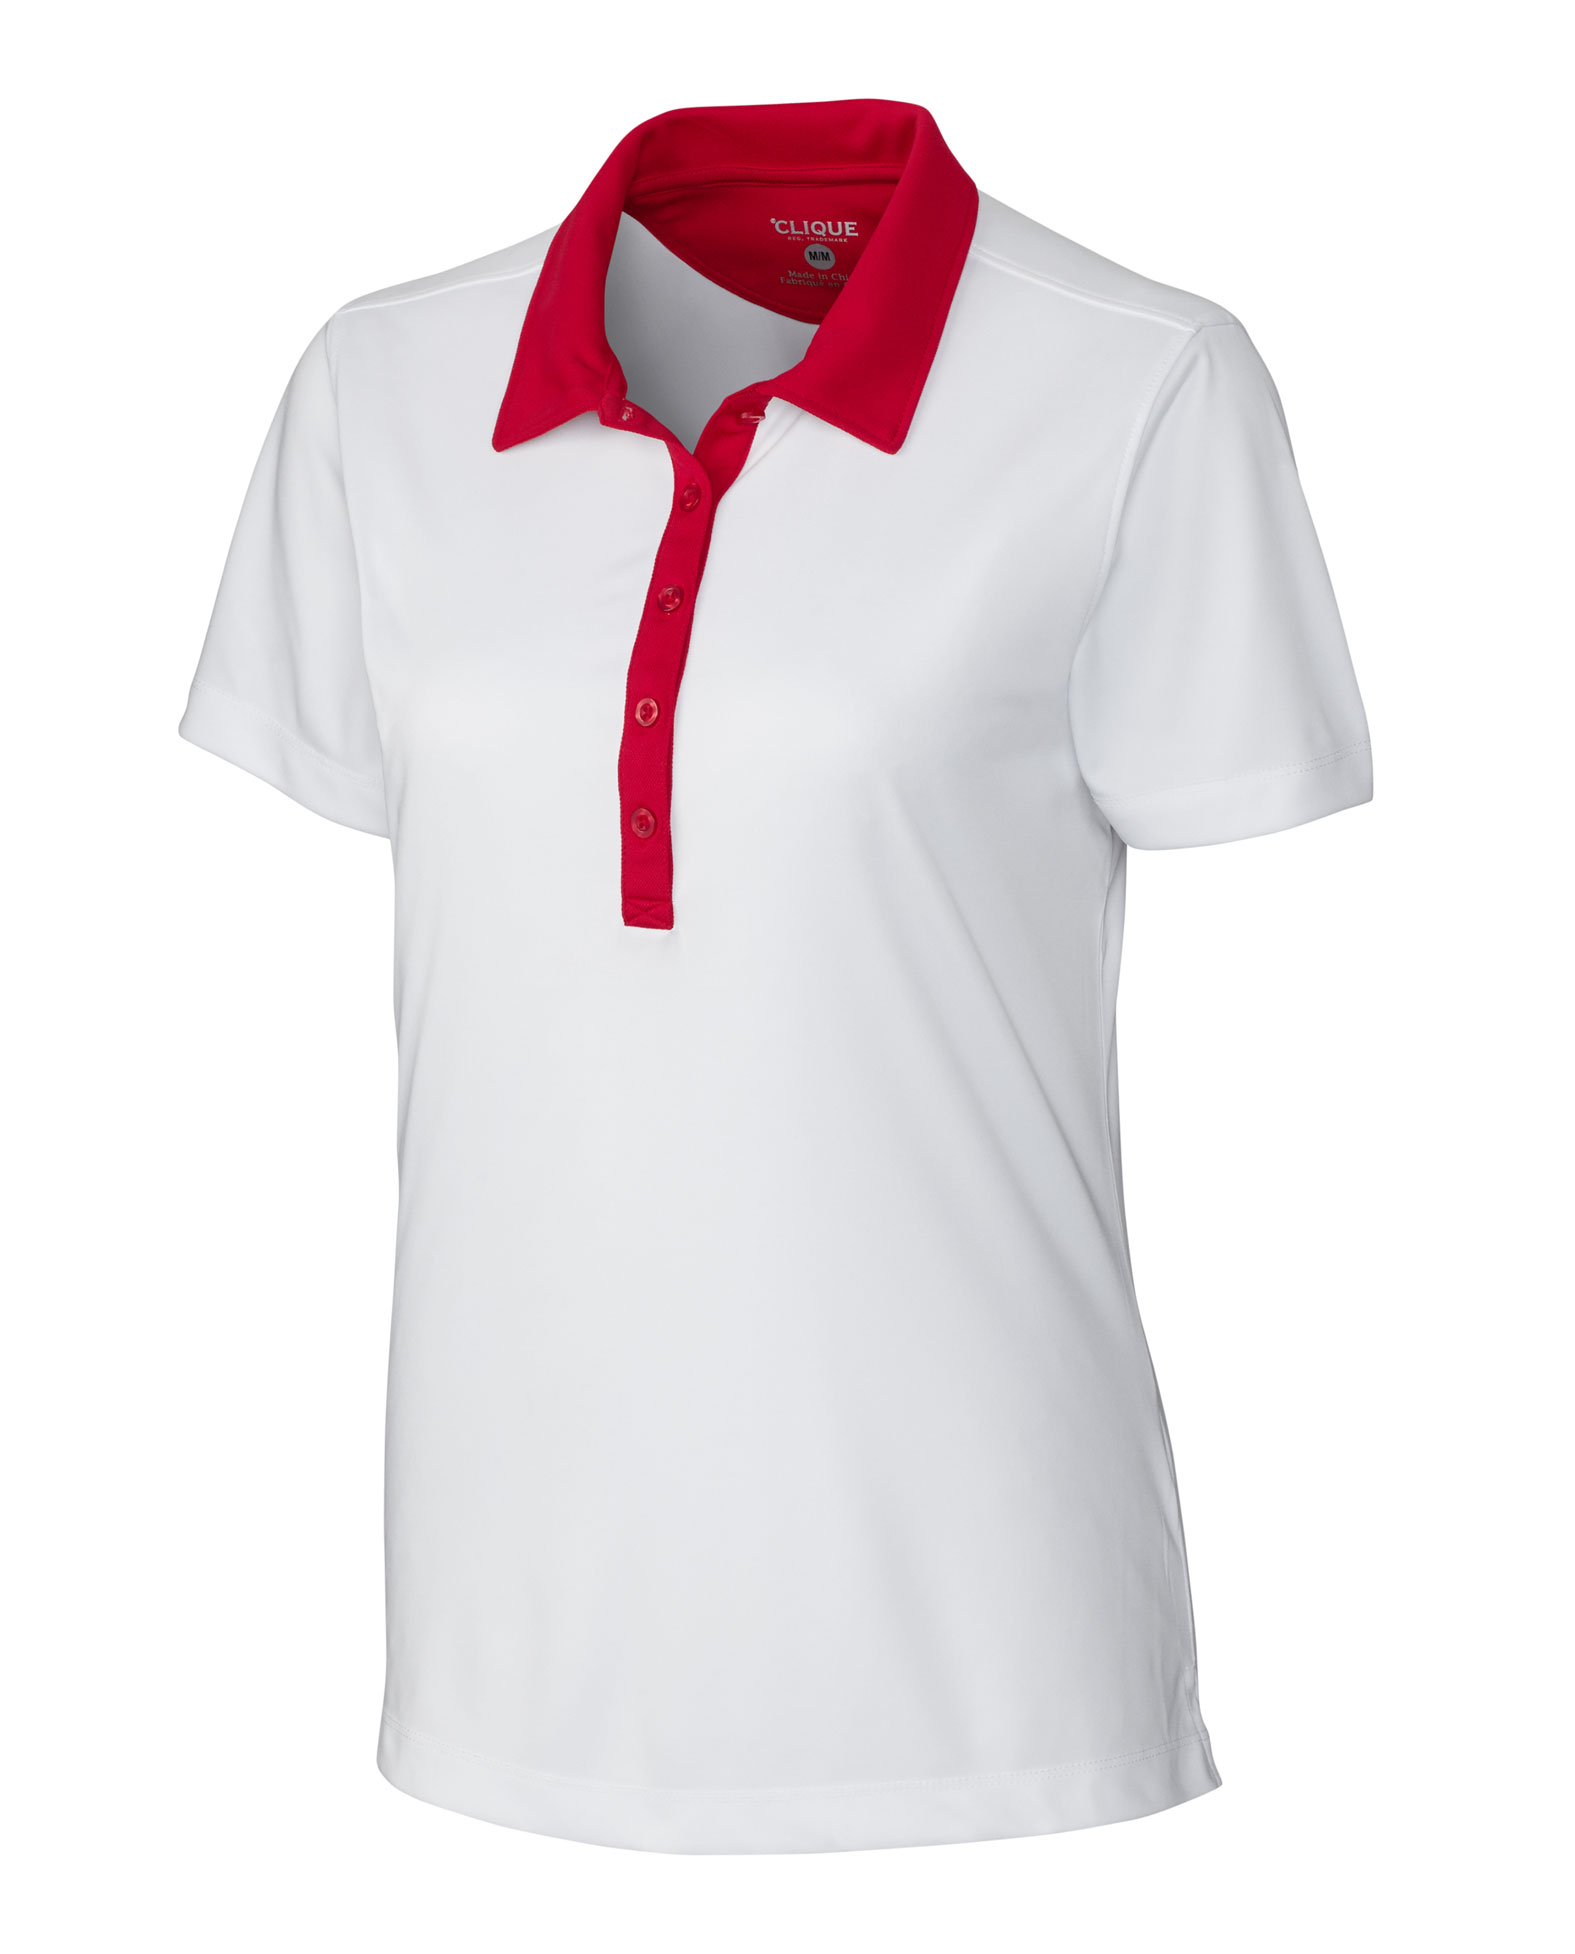 Clique Ladies Parma Colorblock Polo